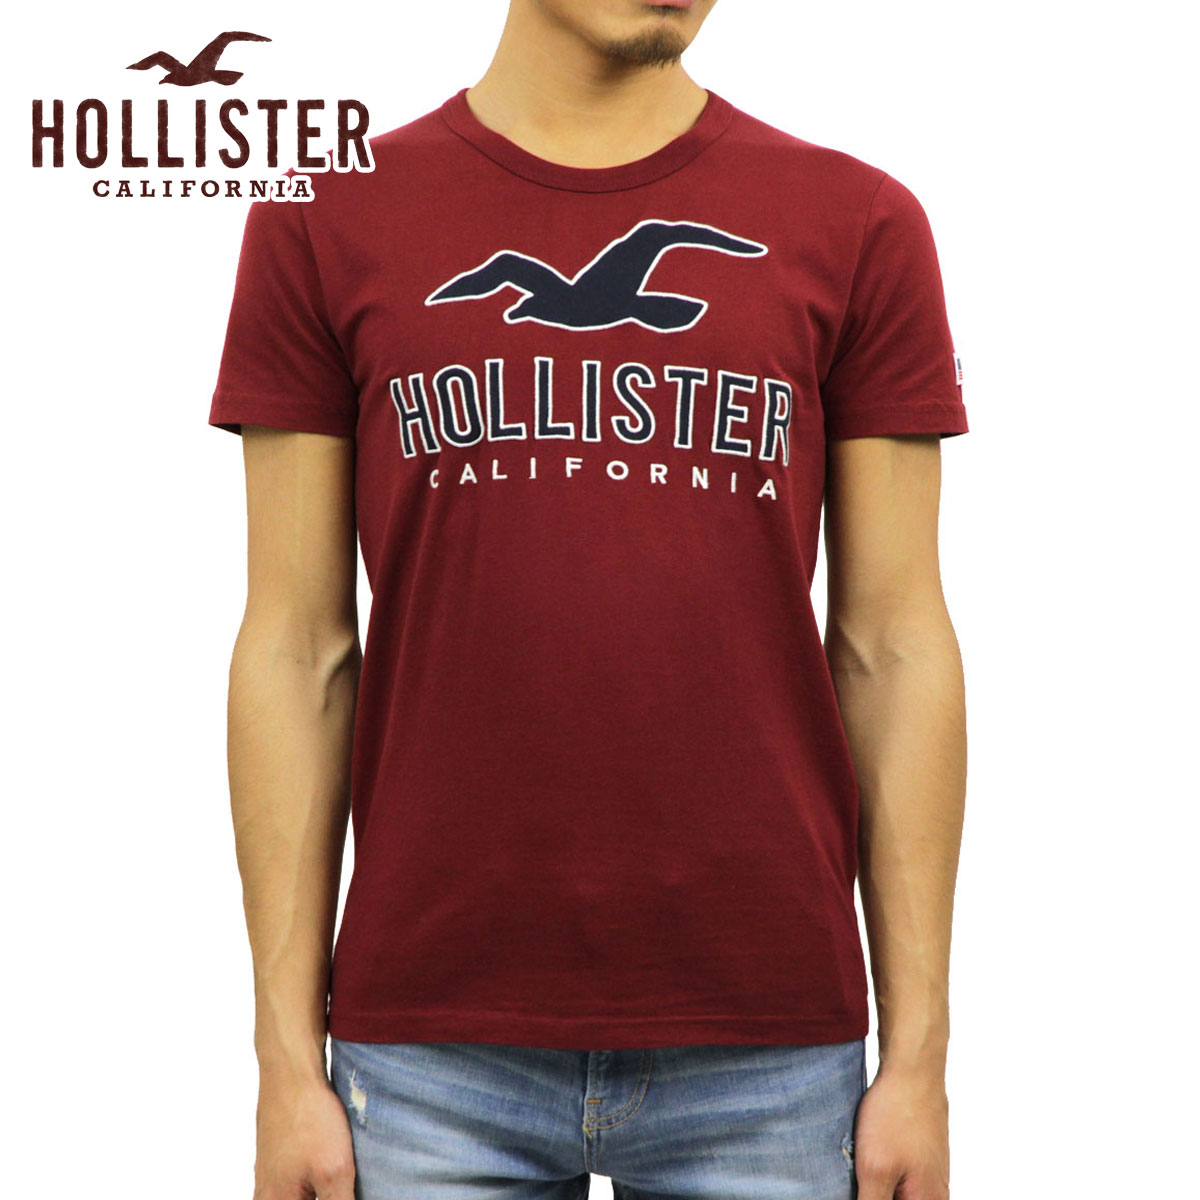 0d12bc9c Hori star HOLLISTER regular article men short sleeves logo T-shirt Logo  Graphic Tee 323 ...